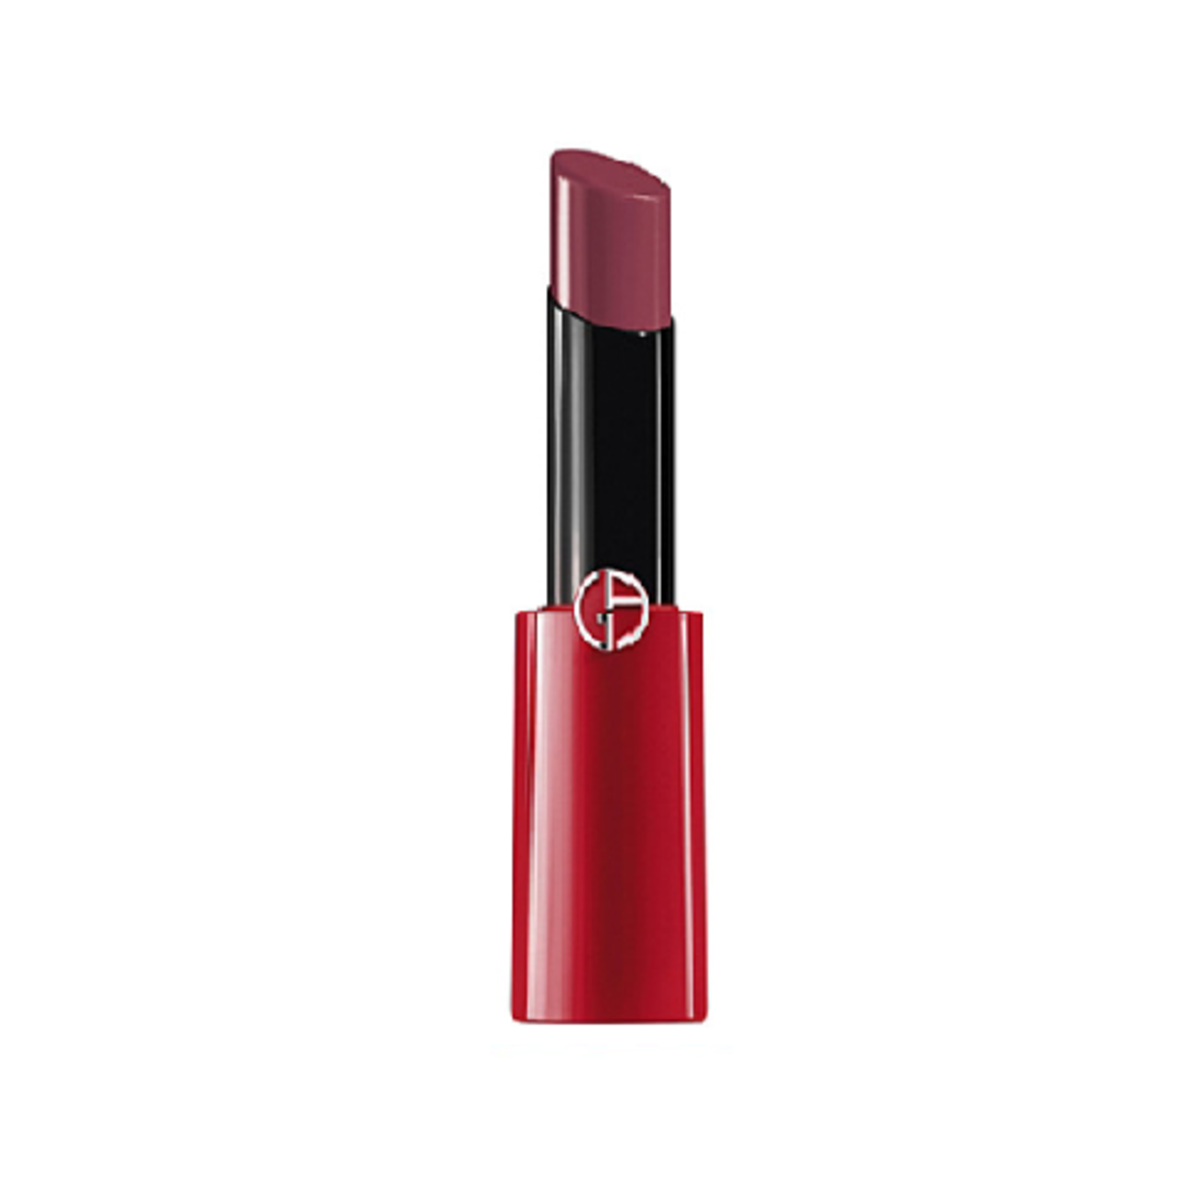 Ecstasy Shine Lip Cream 3g #503 [Parallel Import]*OPEN BEFORE 2020.06-08,USED BEFORE 2021.06-08